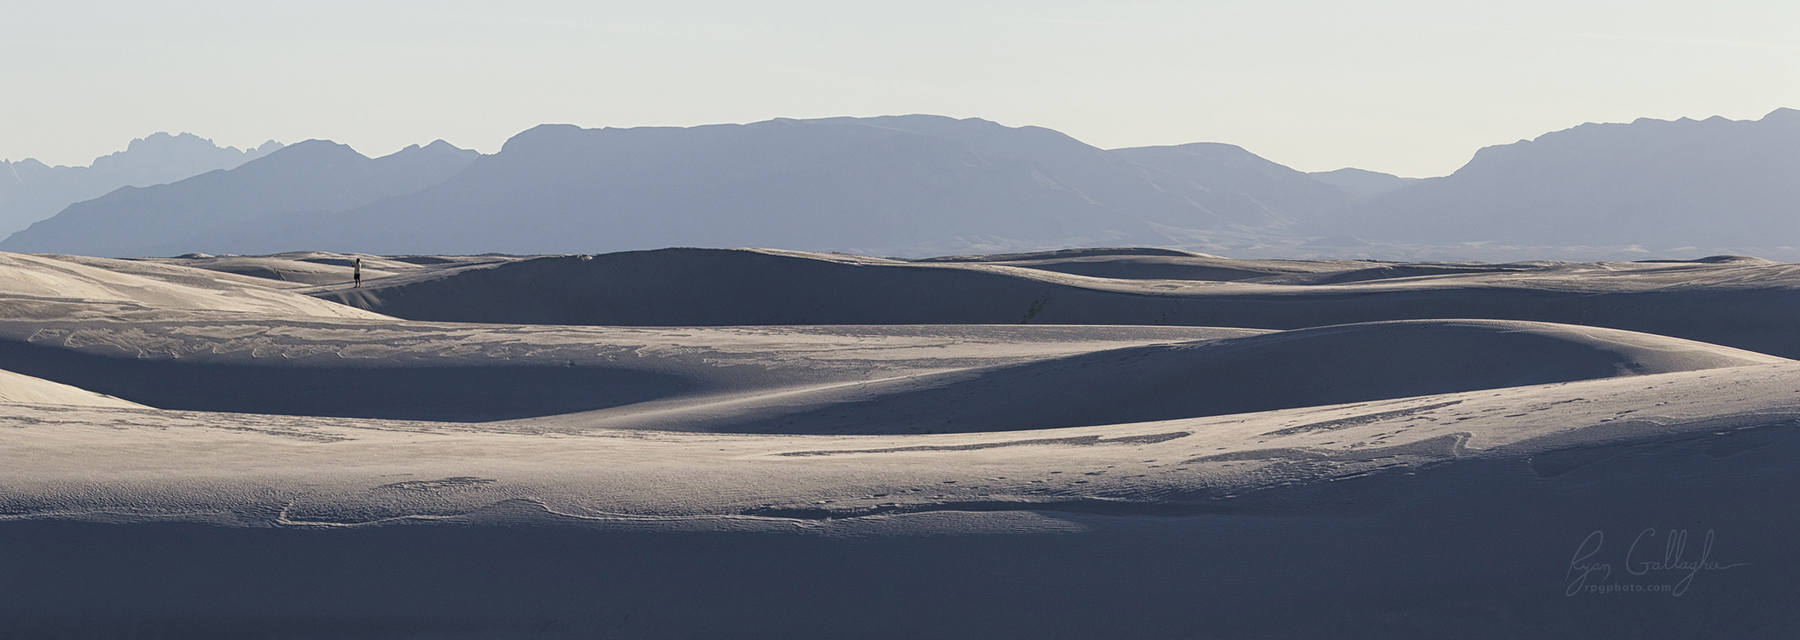 Desert Waves in Waning Light - White Sands National Monument